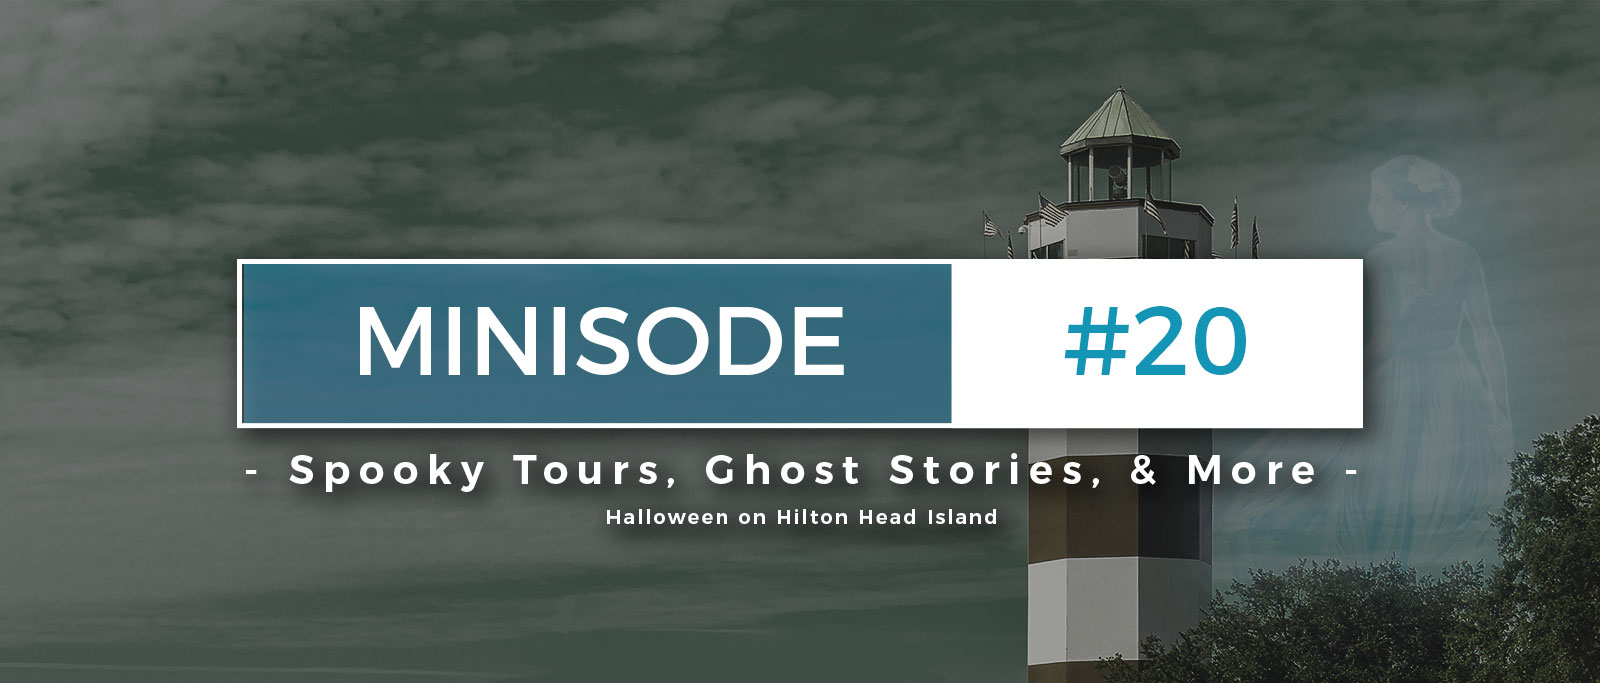 minisode-20-halloween-on-hilton-head